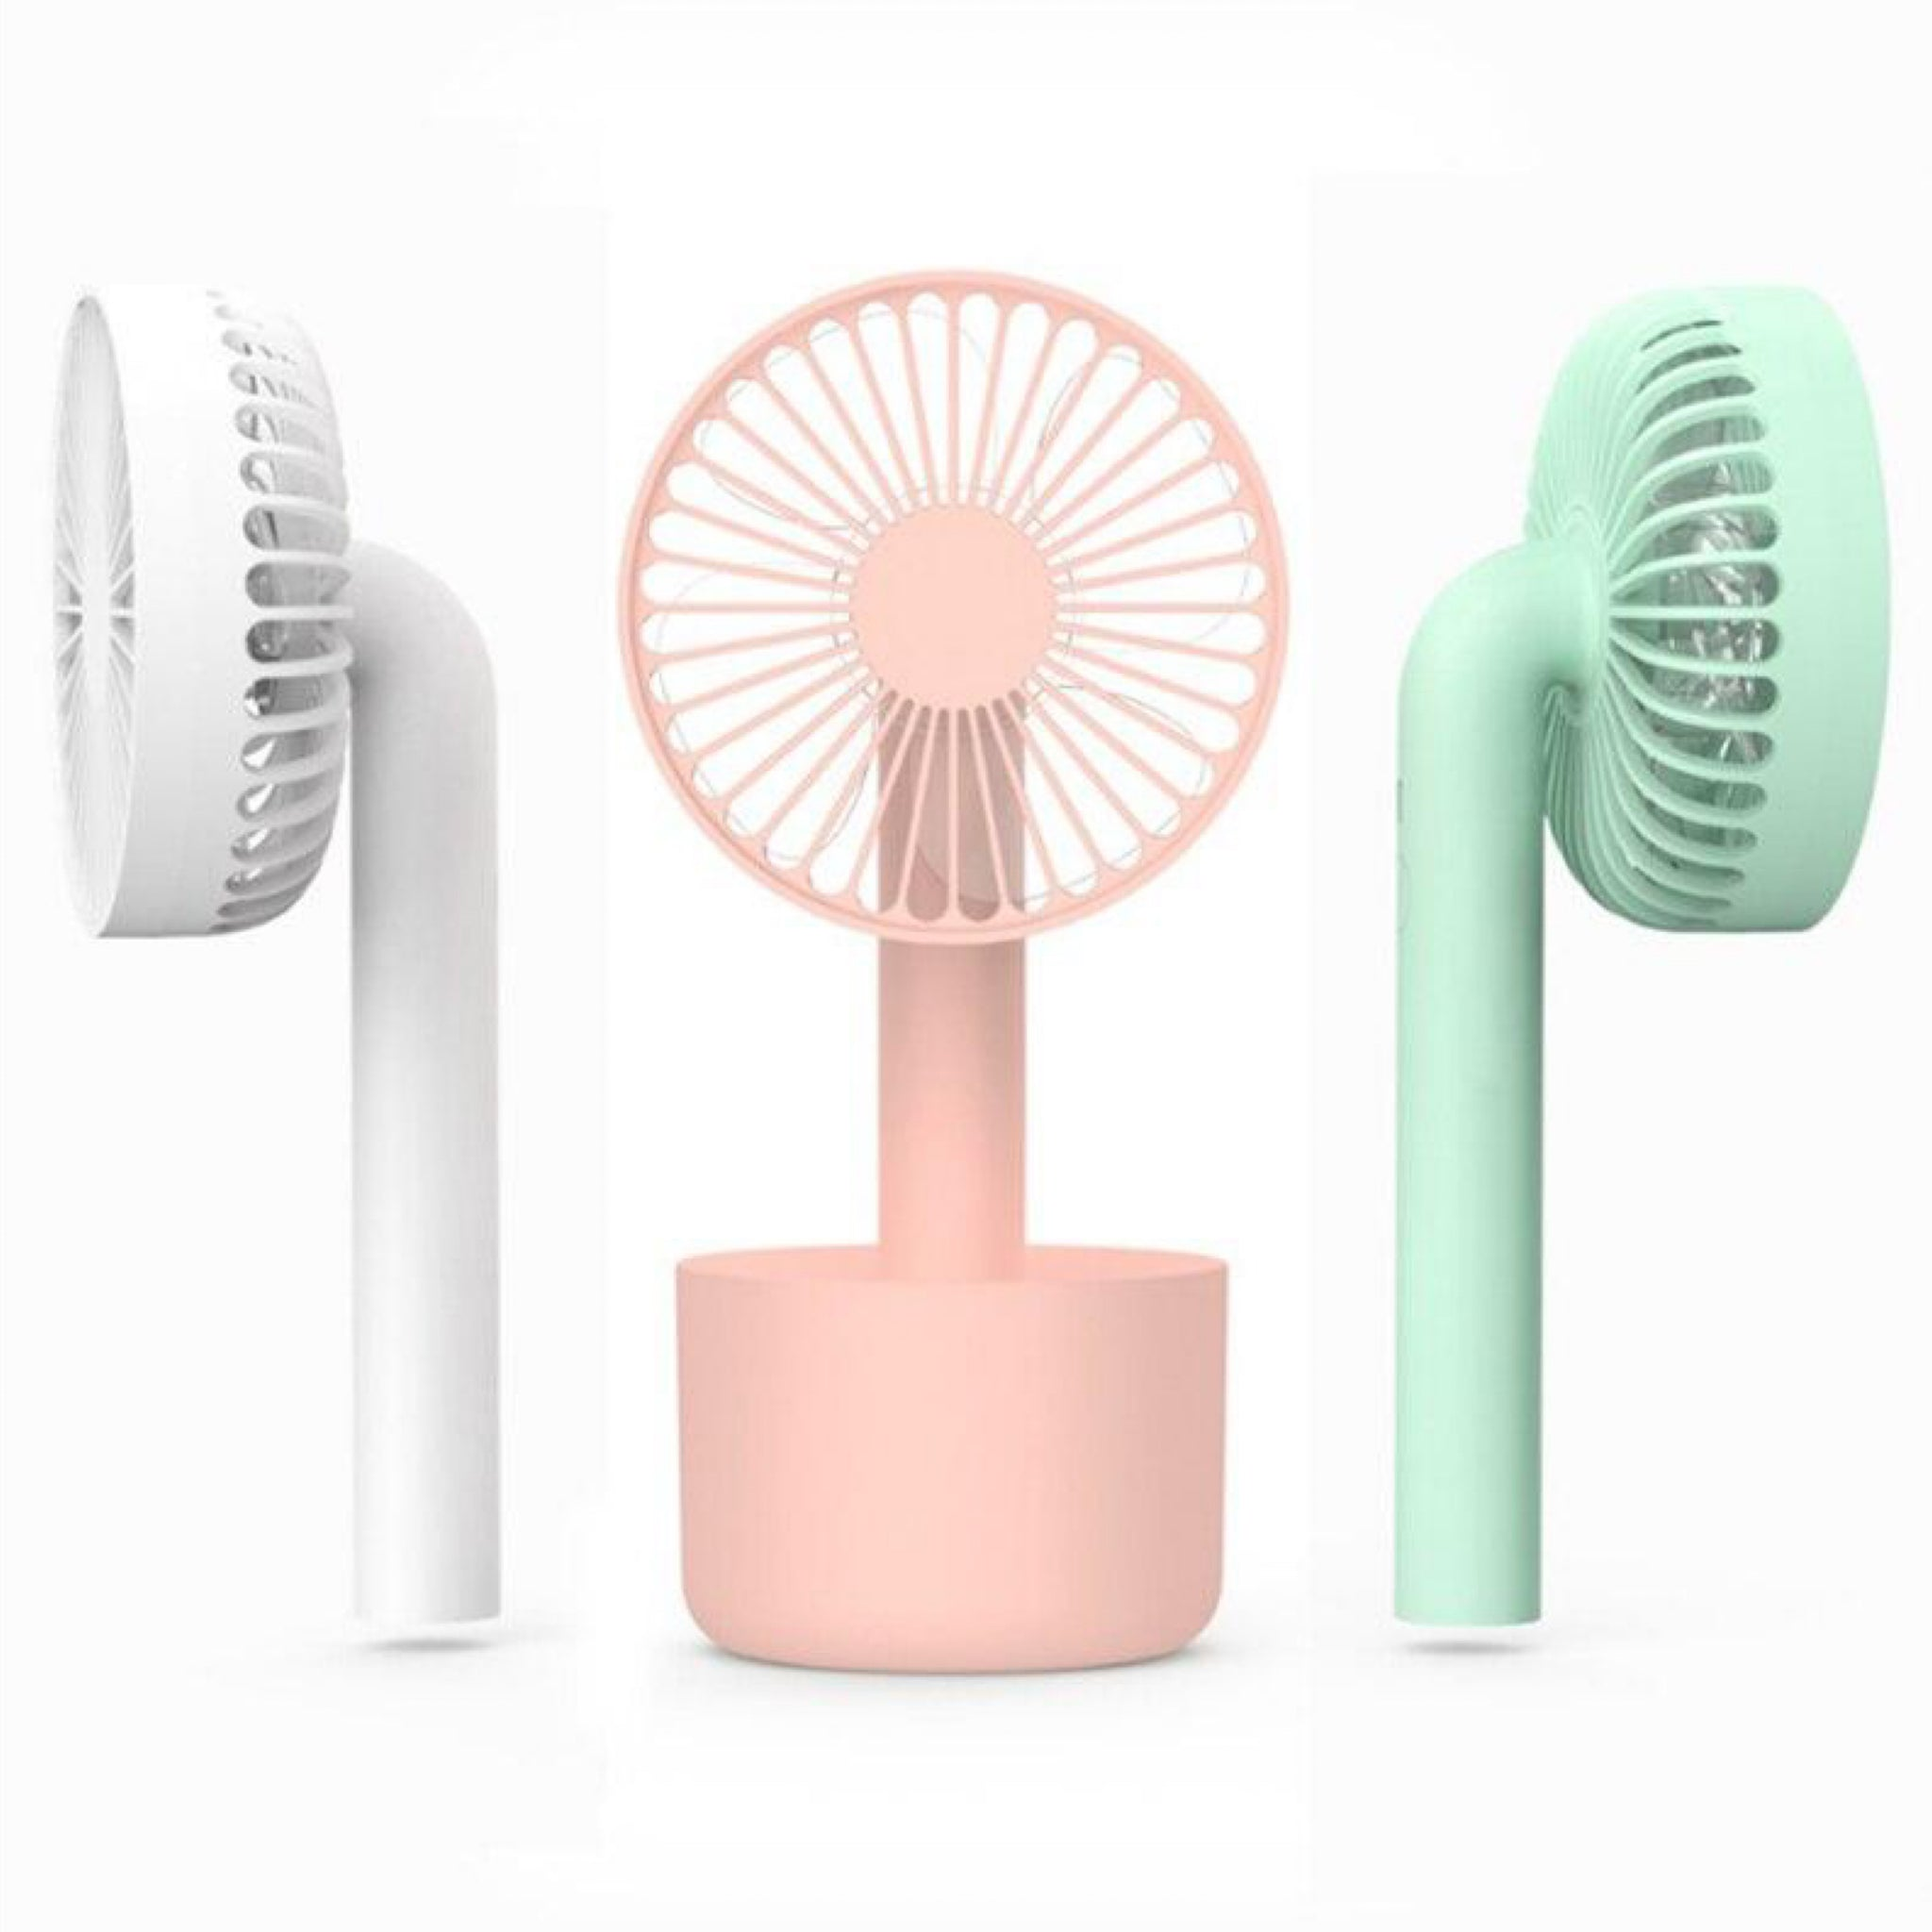 Detachable Portable Handheld Mini Fan Degree Rotation Ultra Quiet Home Office Outdoor Desk USB Electric Charging Fans Trend